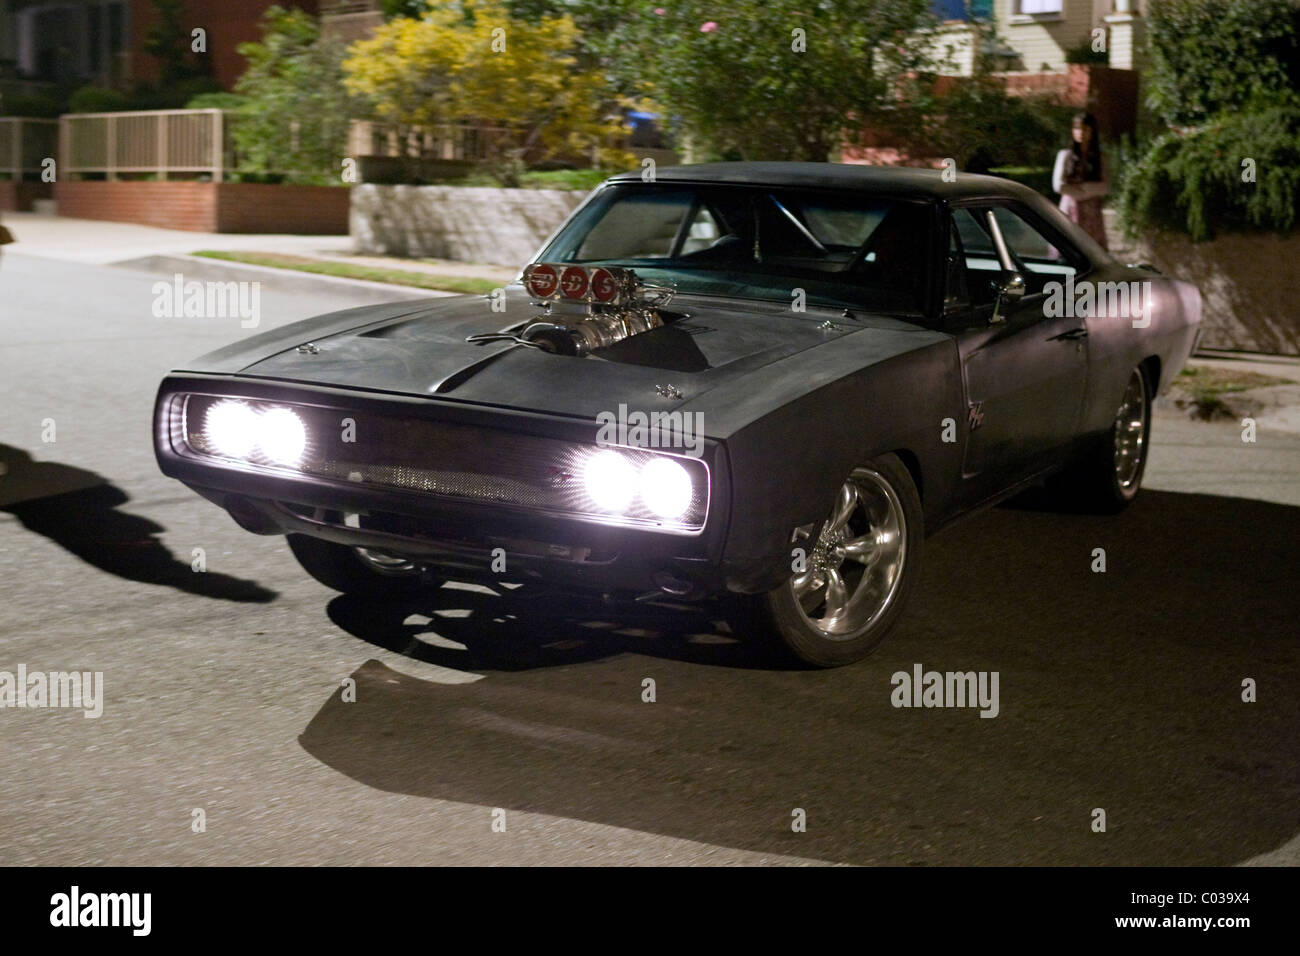 1970 DODGE CHARGER FAST & FURIOUS; THE FAST AND THE FURIOUS 4 (2009) - Stock Image